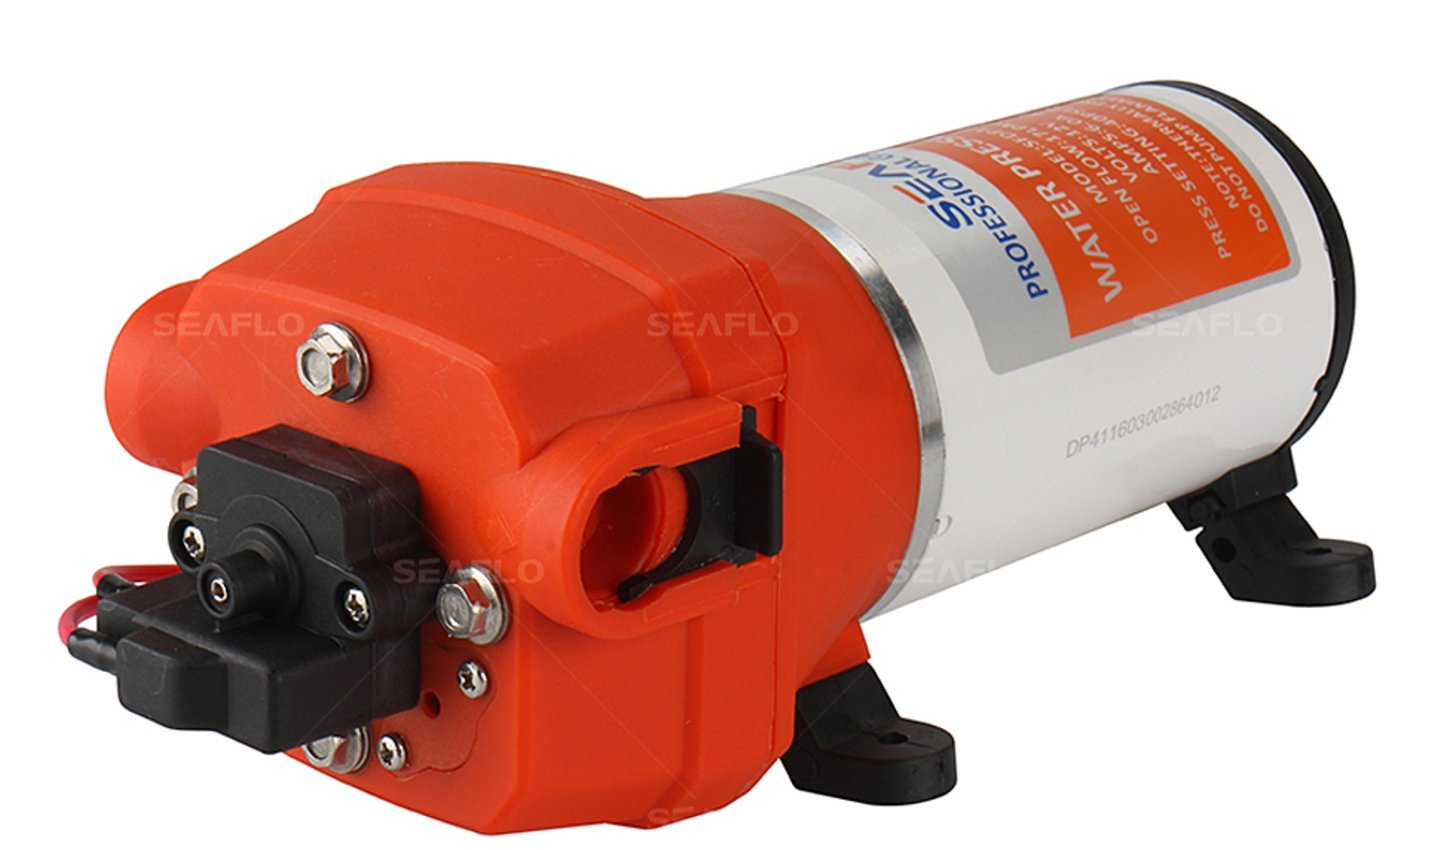 SEAFLO 41-Series Water Pressure Diaphragm Pump - 12v, 4.5GPM, 40PSI